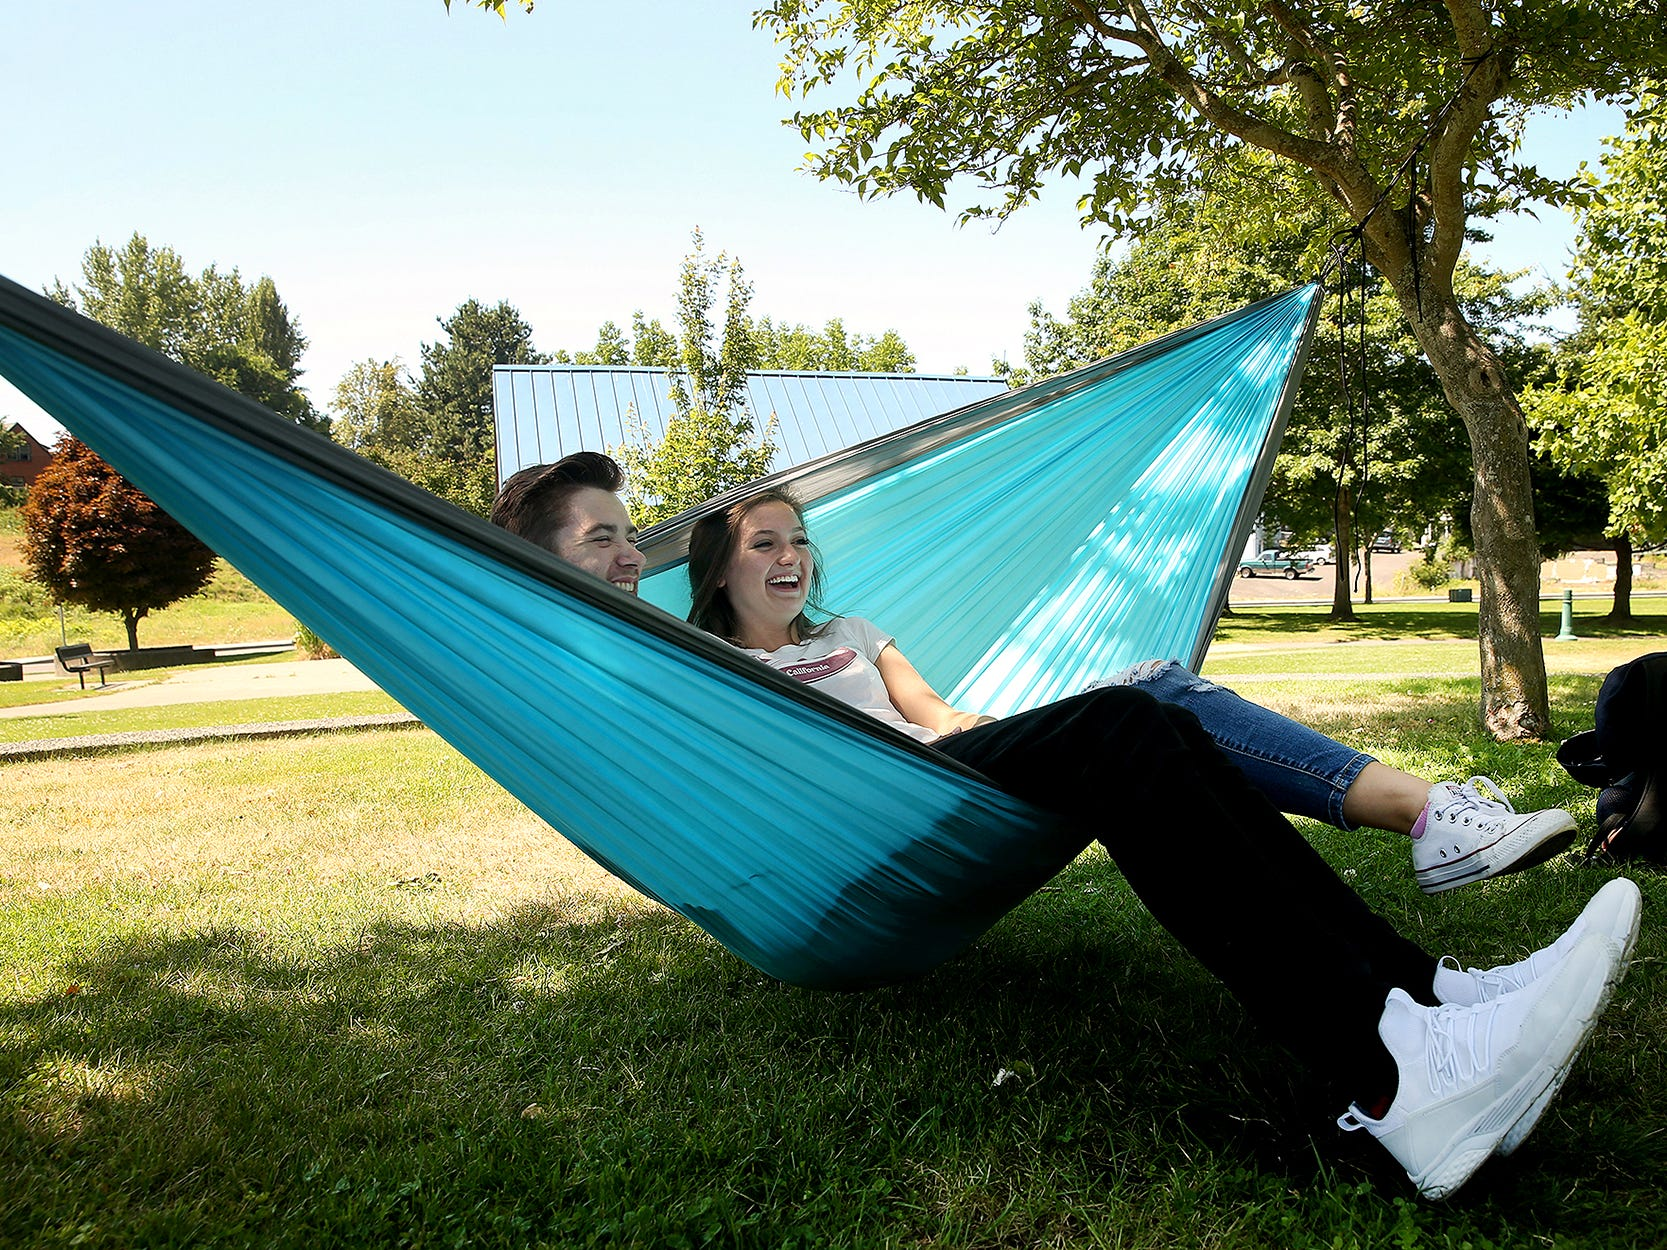 Cole Eckert, of Bremerton and Amelia Boyle, of Silverdale, relax on a hammock in the shade at Evergreen-Rotary Park in Bremerton on Tuesday.